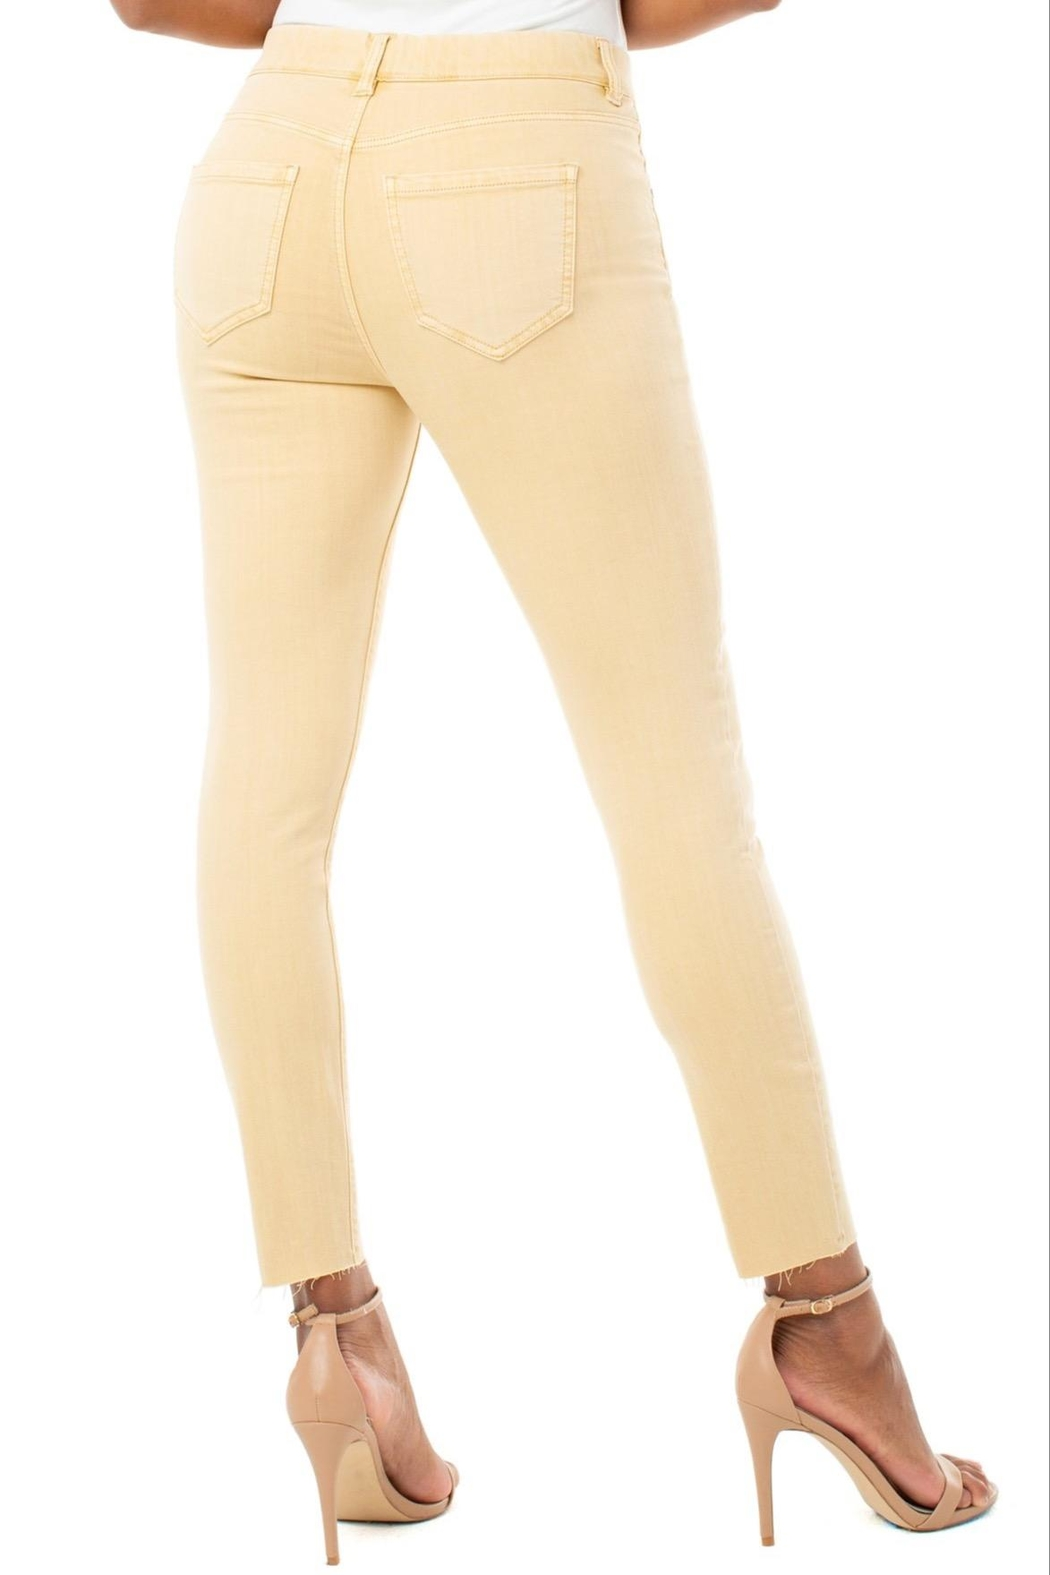 Liverpool Jean Company Gia Glider Crop - Front Full Image